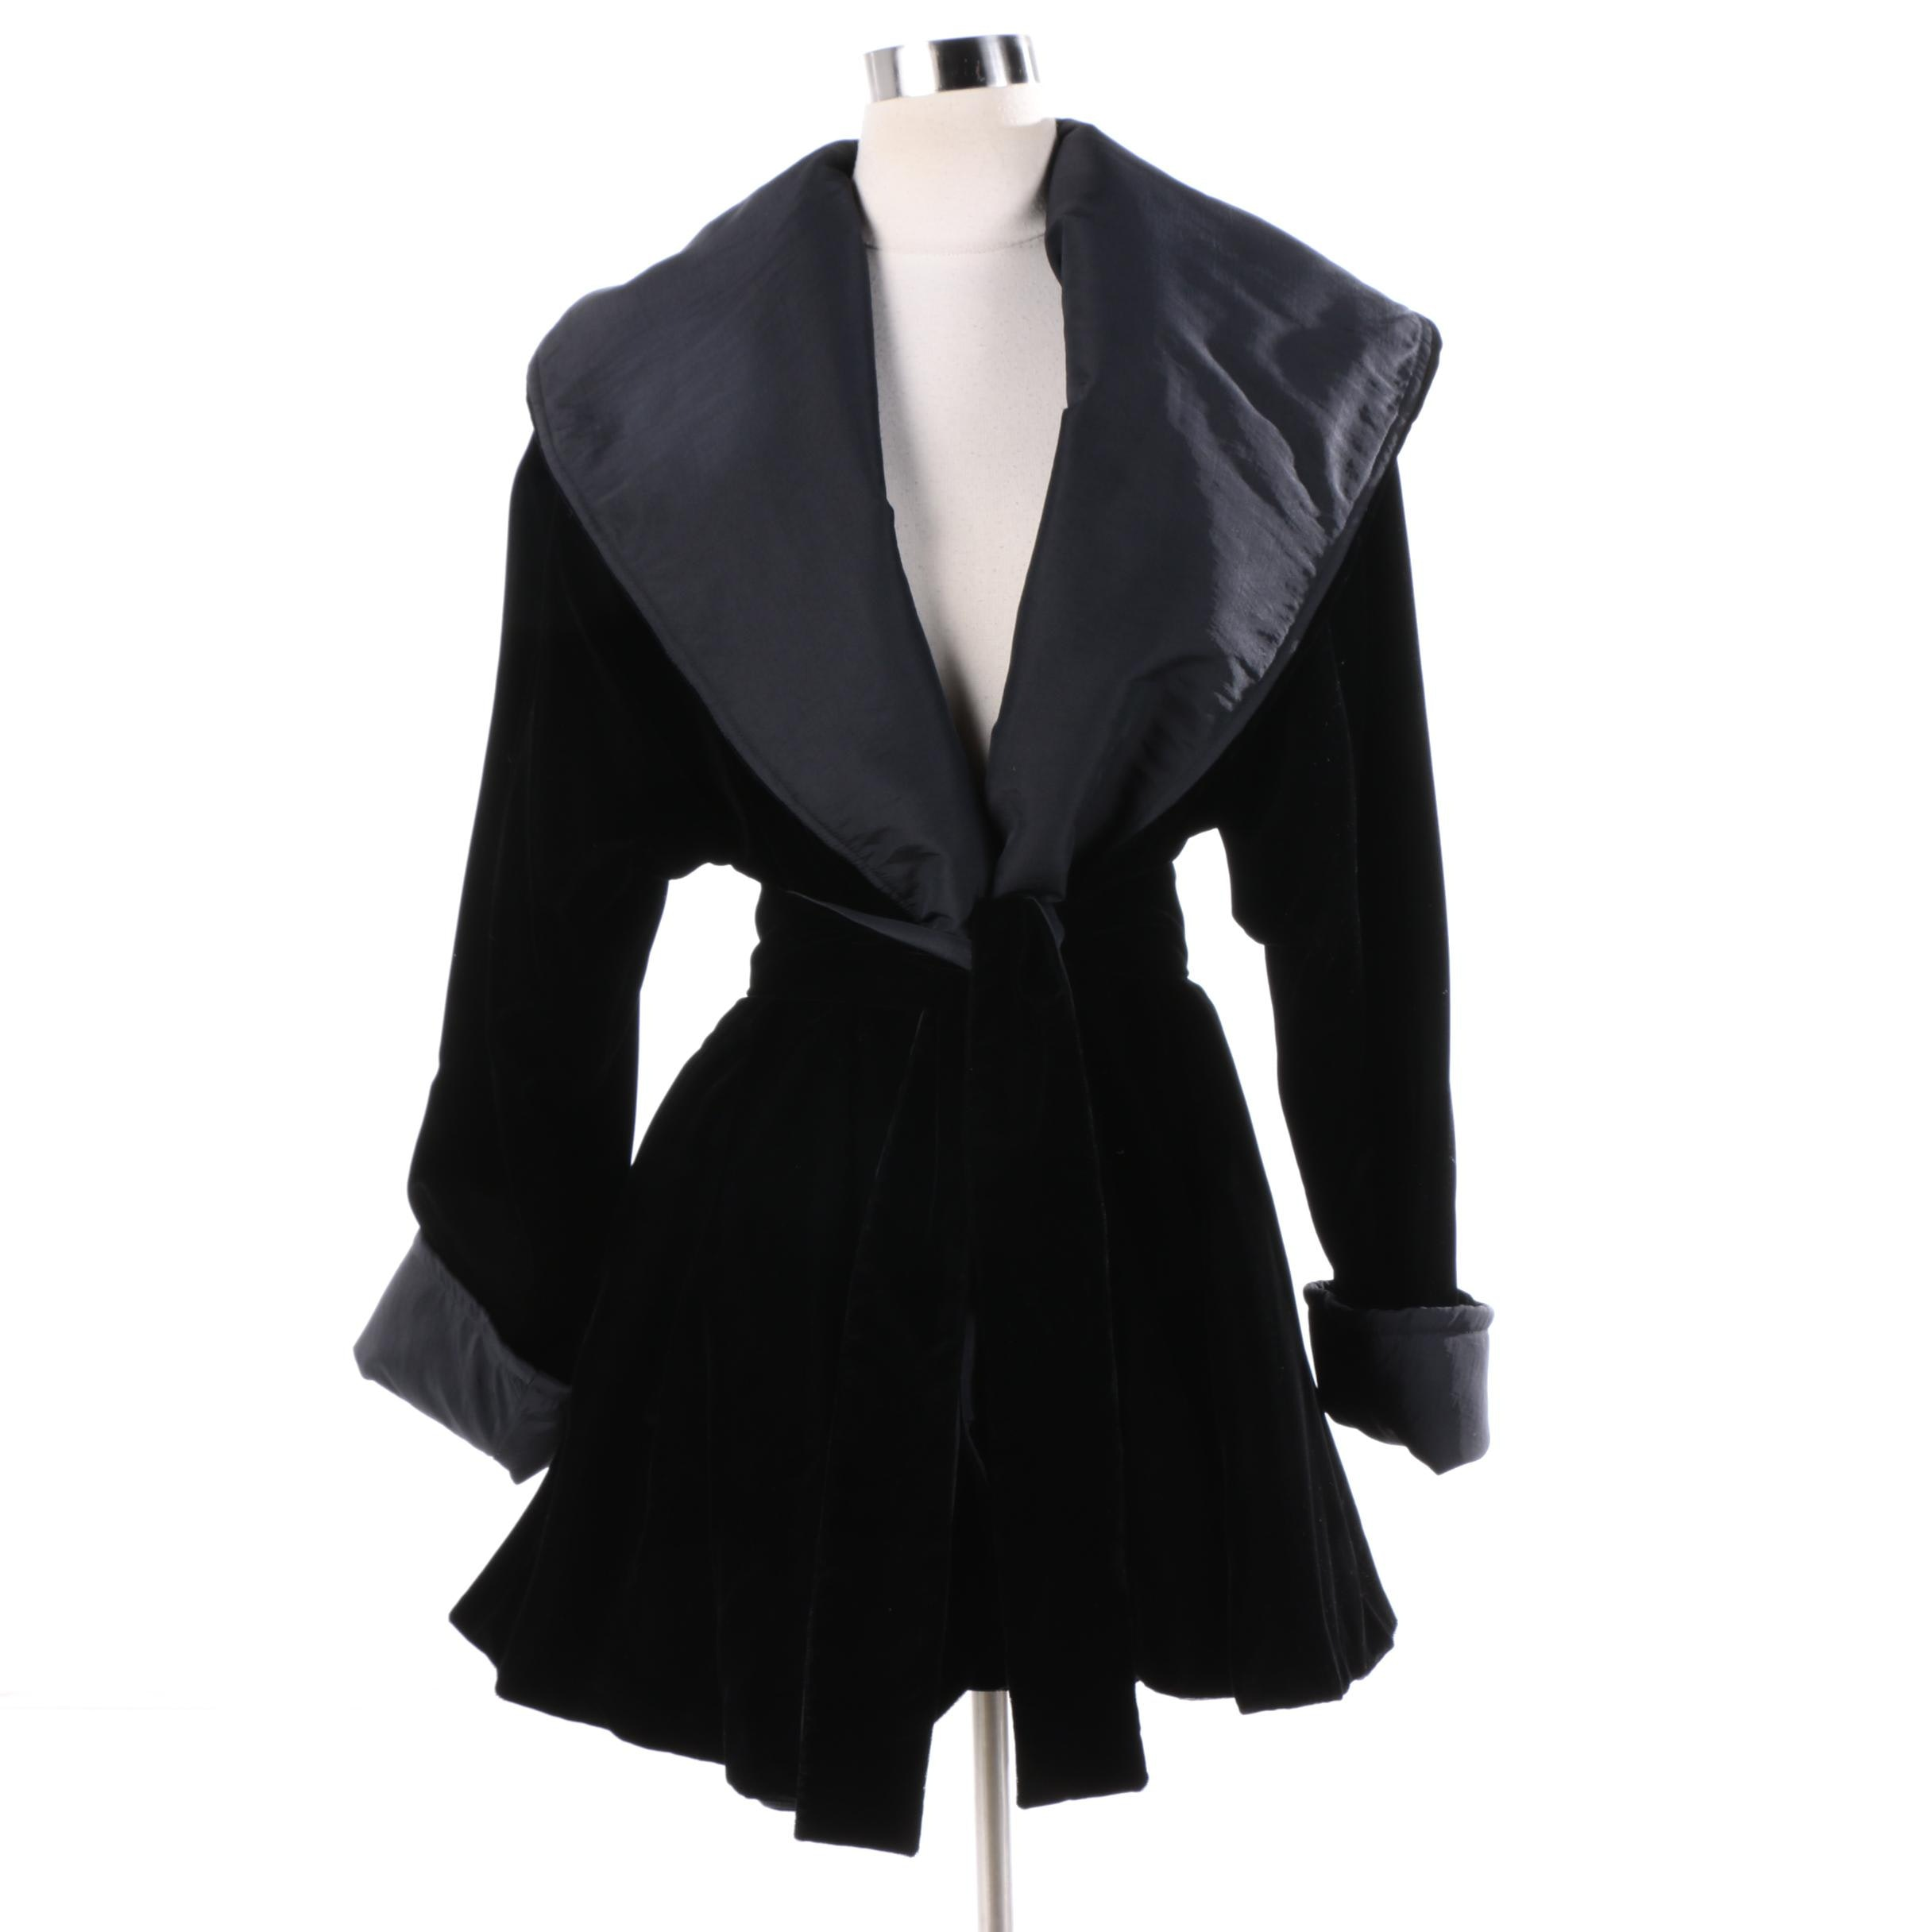 Women's Reversible Black Velvet Jacket with Matching Sash